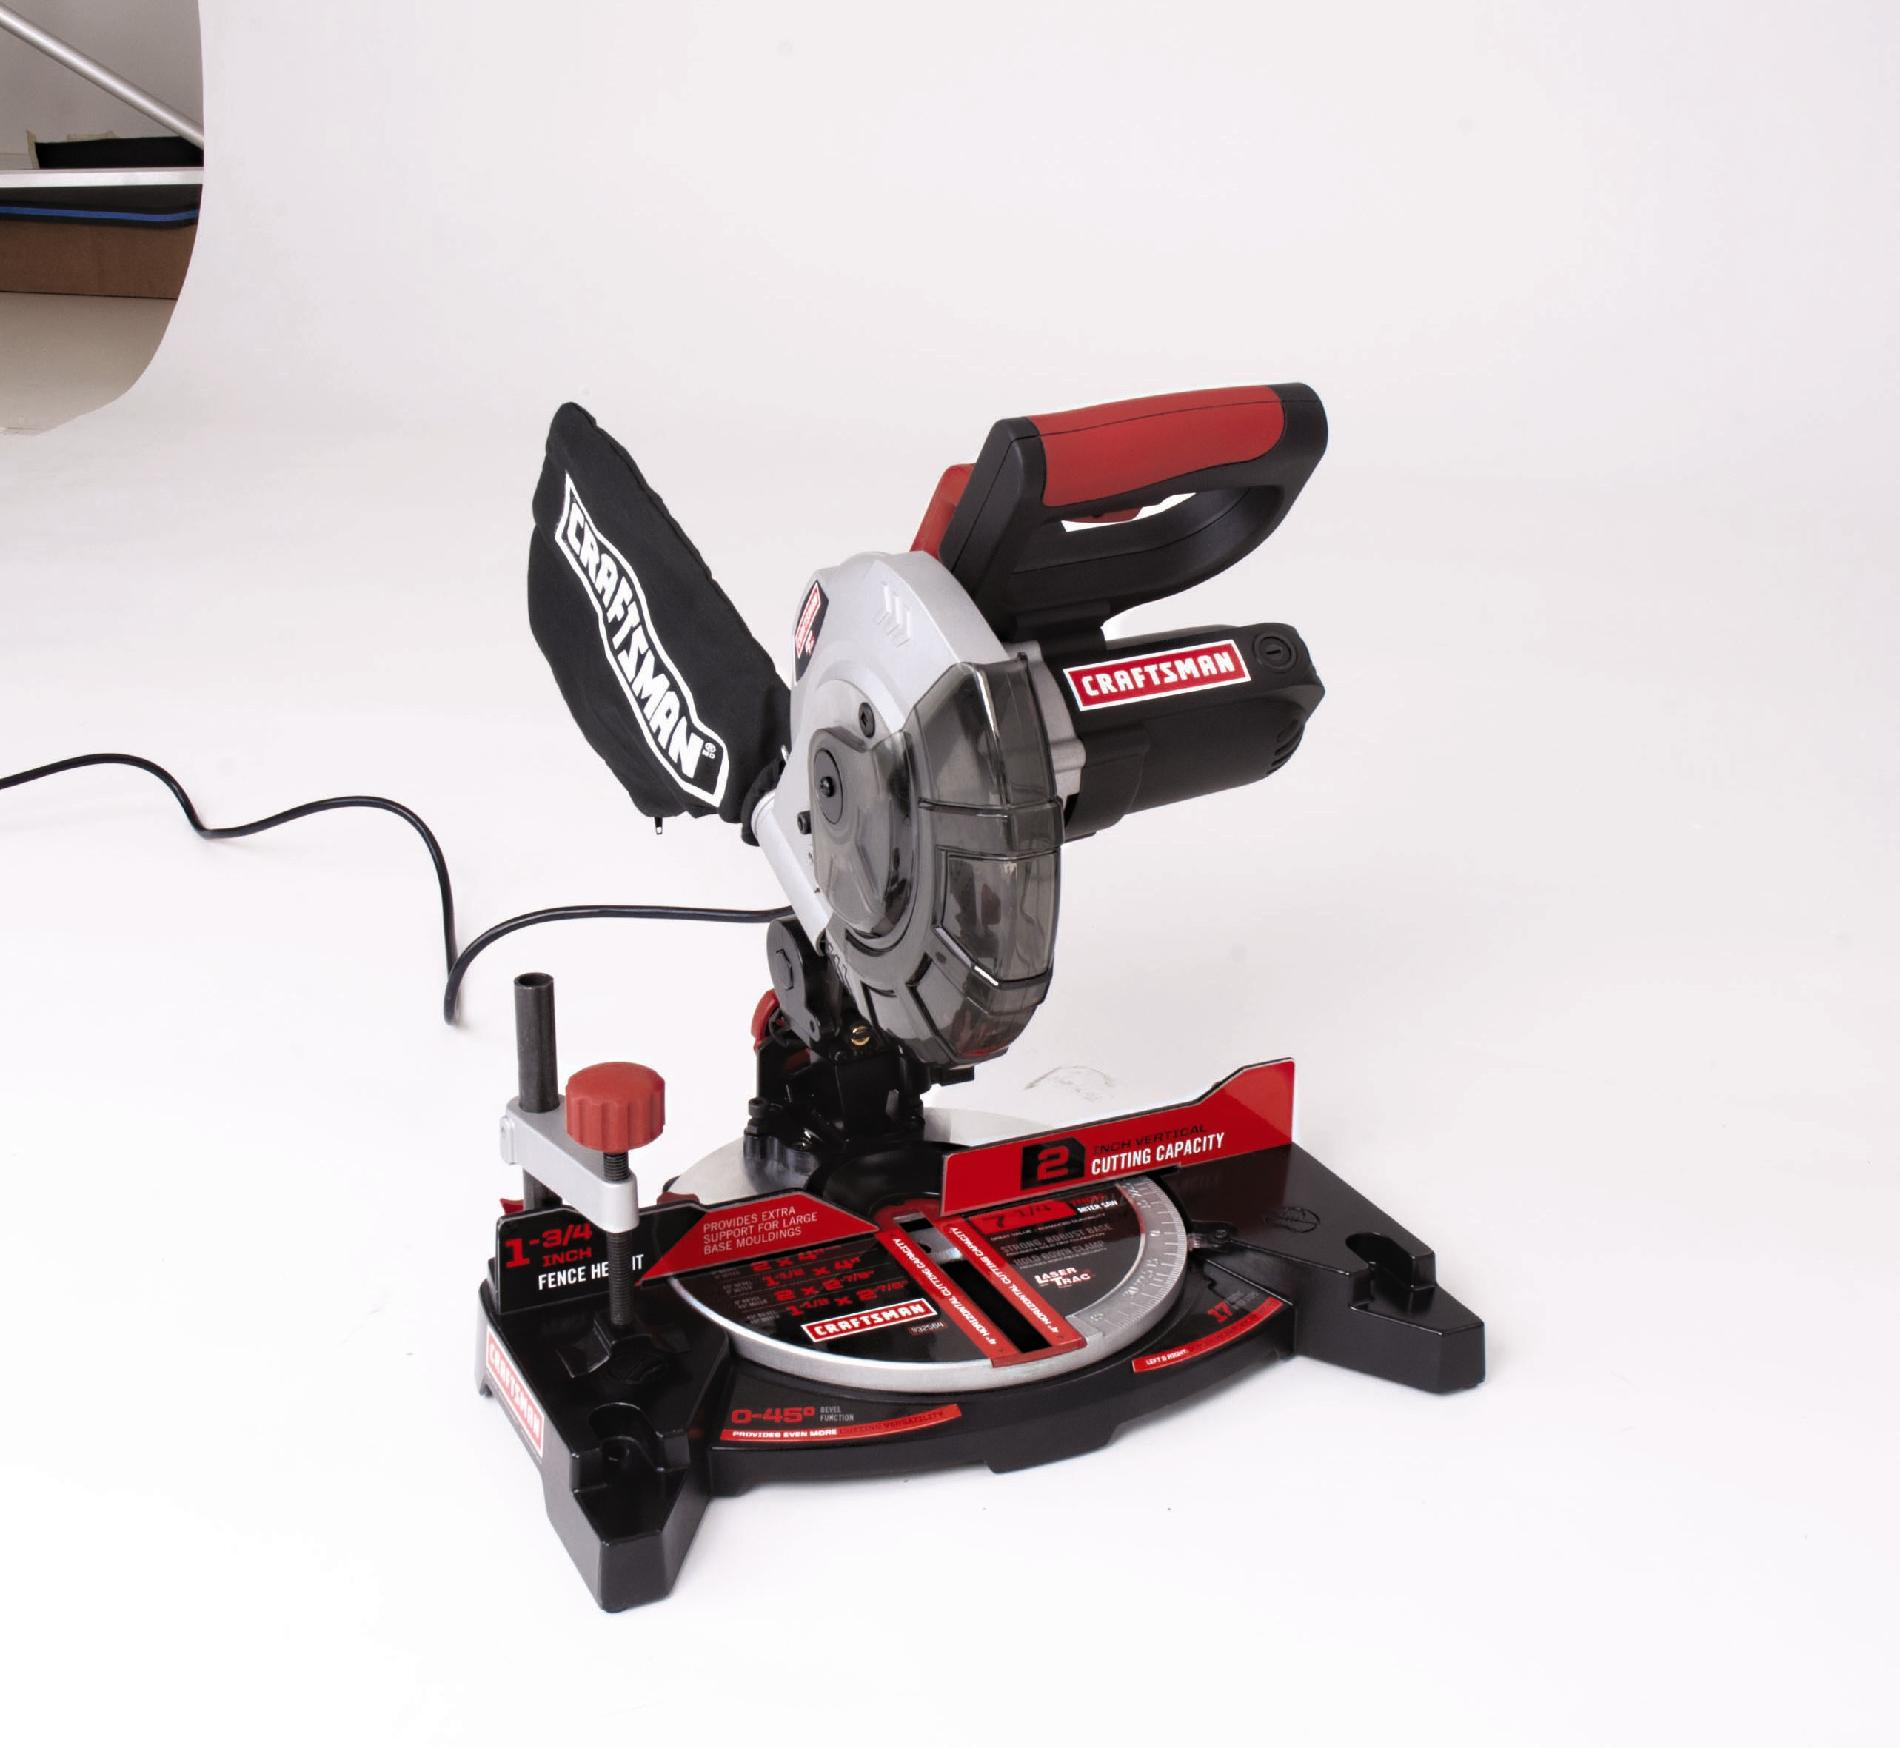 Craftsman 7-1/4-Inch Compound Miter Saw